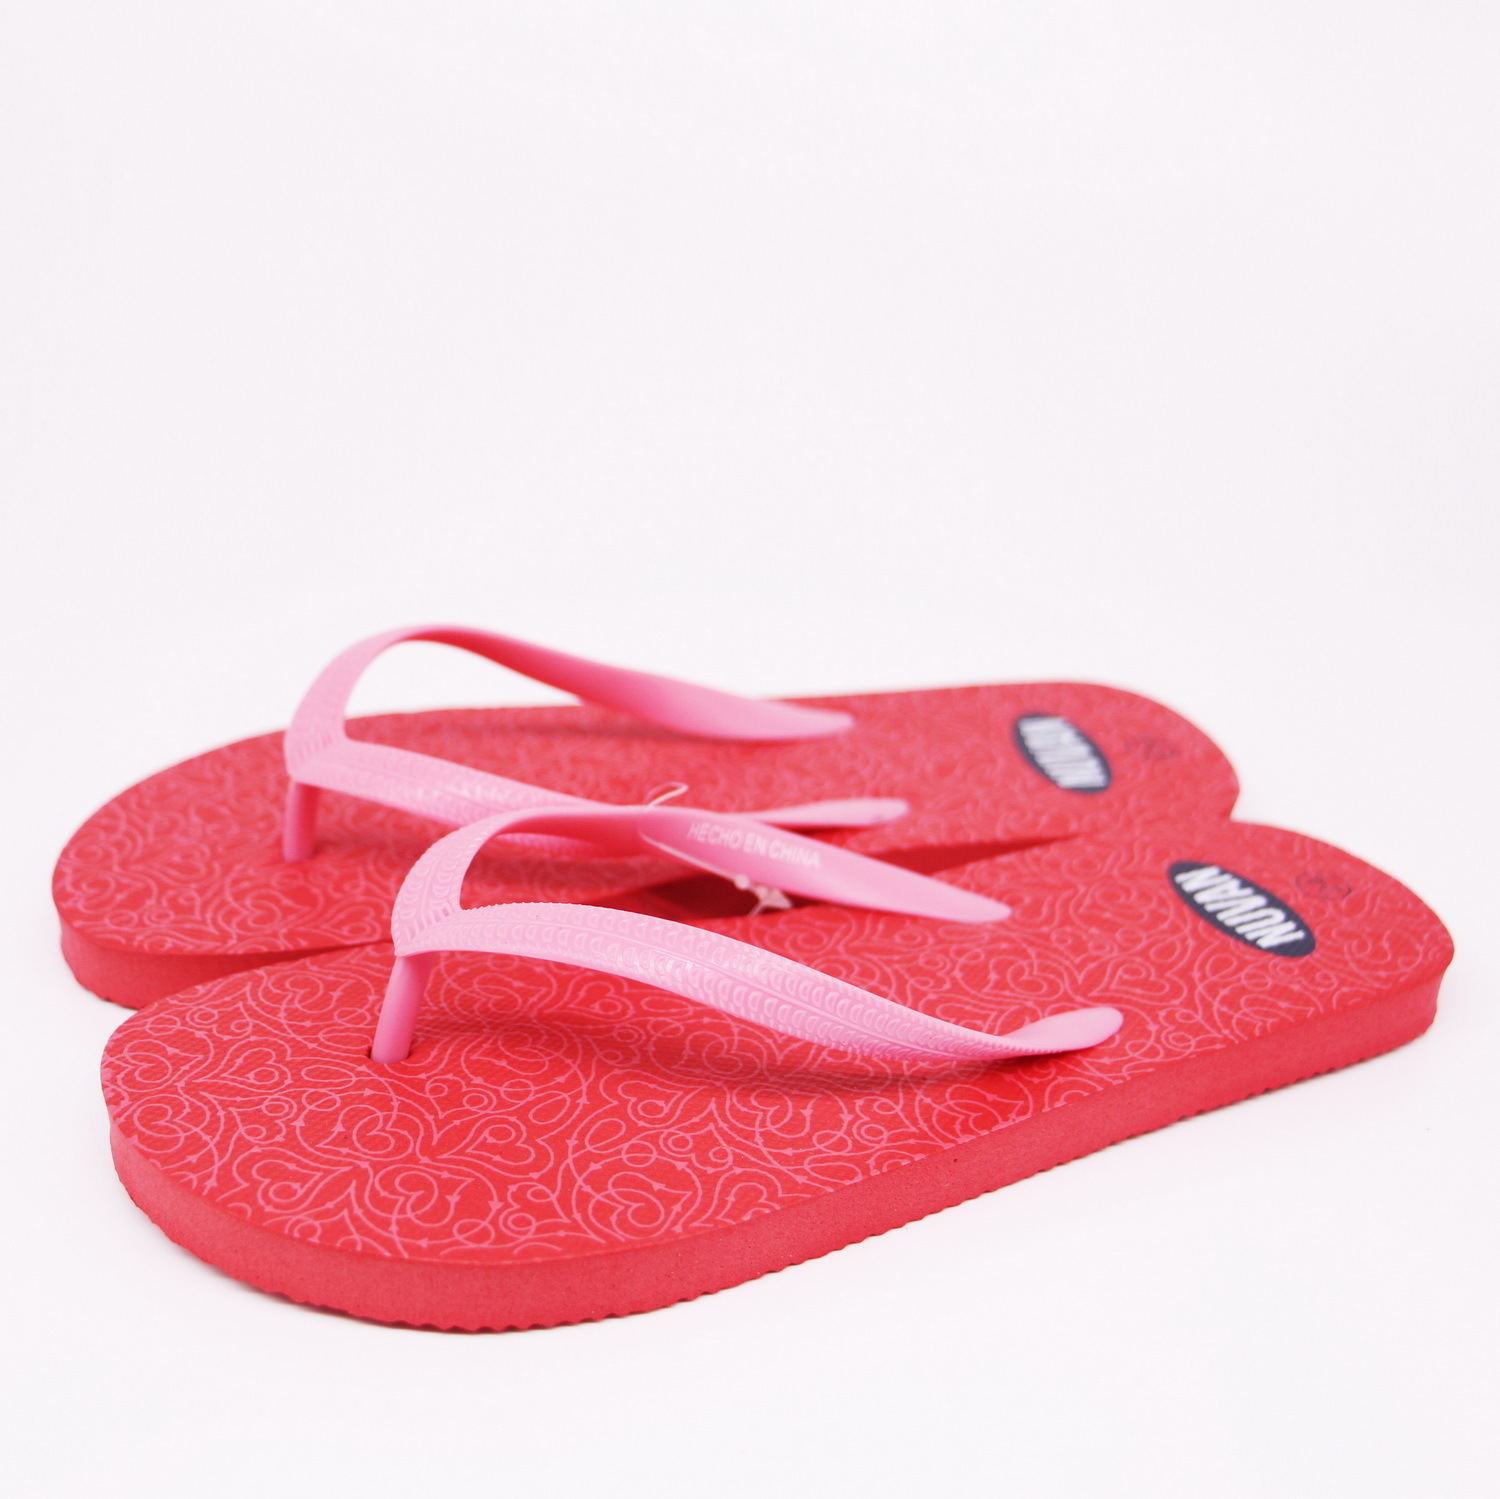 b7003ebd7 Fashion High Quality PE Outsole Women Wholesale Fur Slippers for Lady